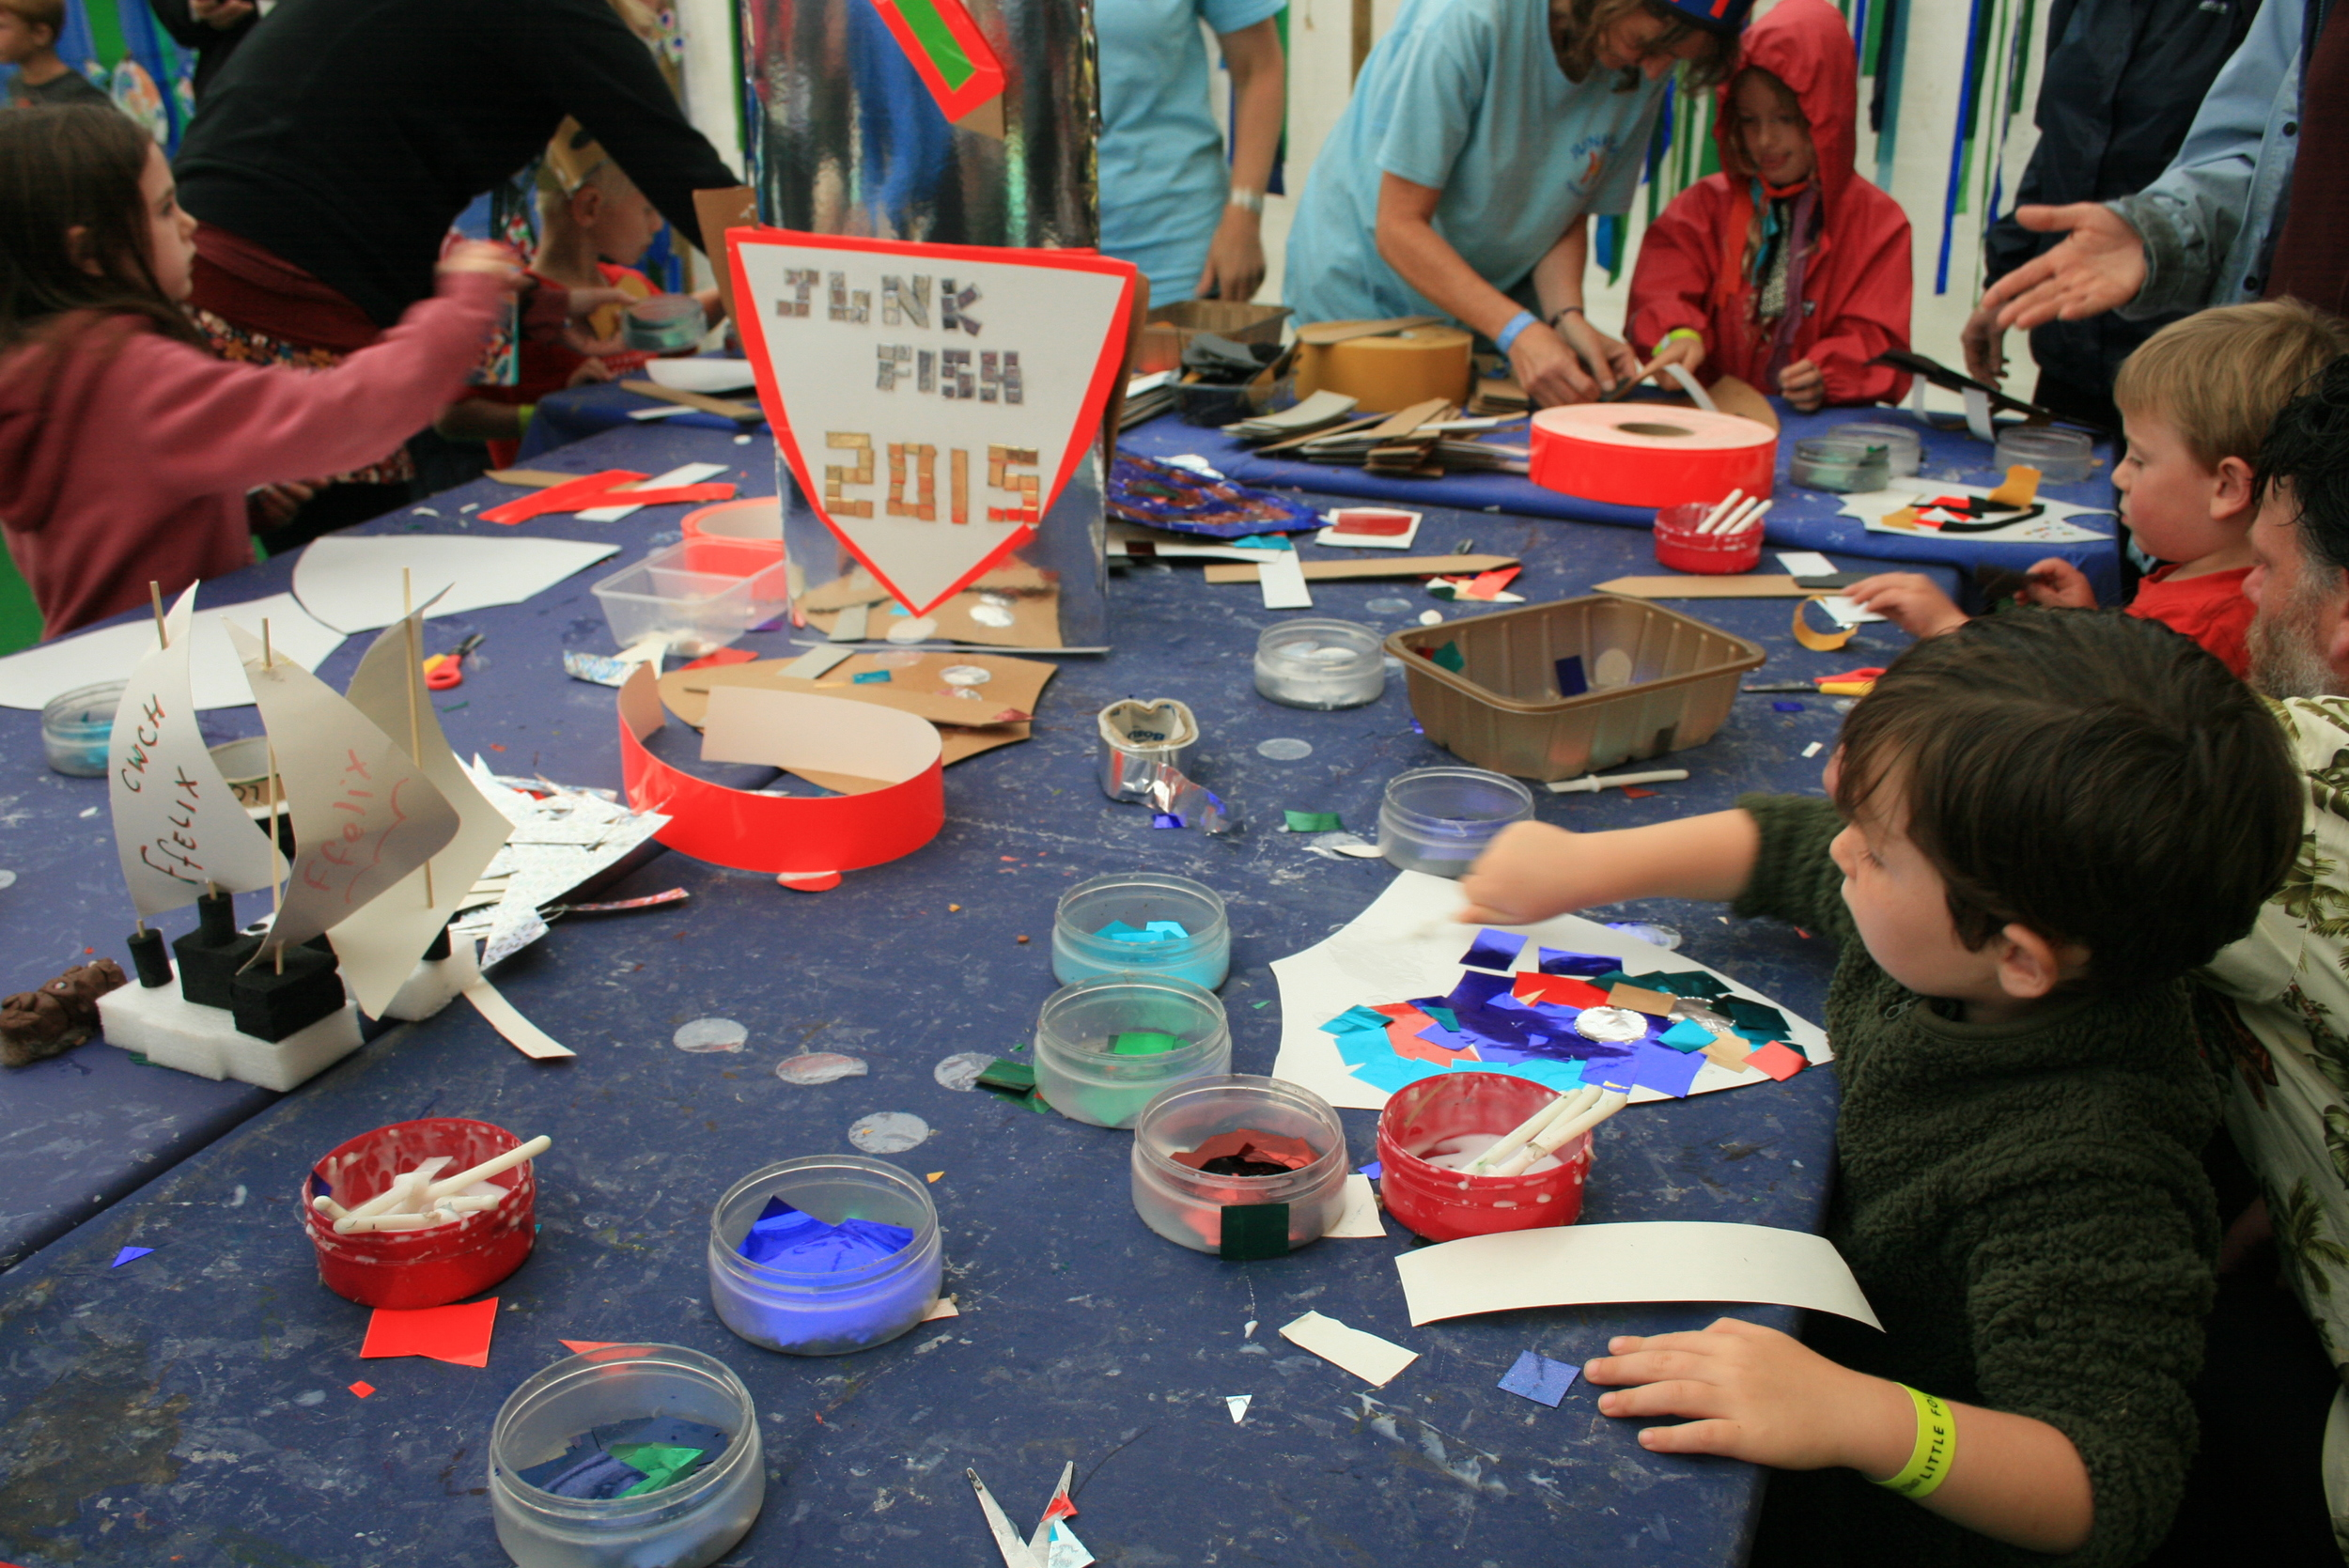 The activities in The Young Folks field were excellent. We made the most of the free craft activities to get out of the rain.